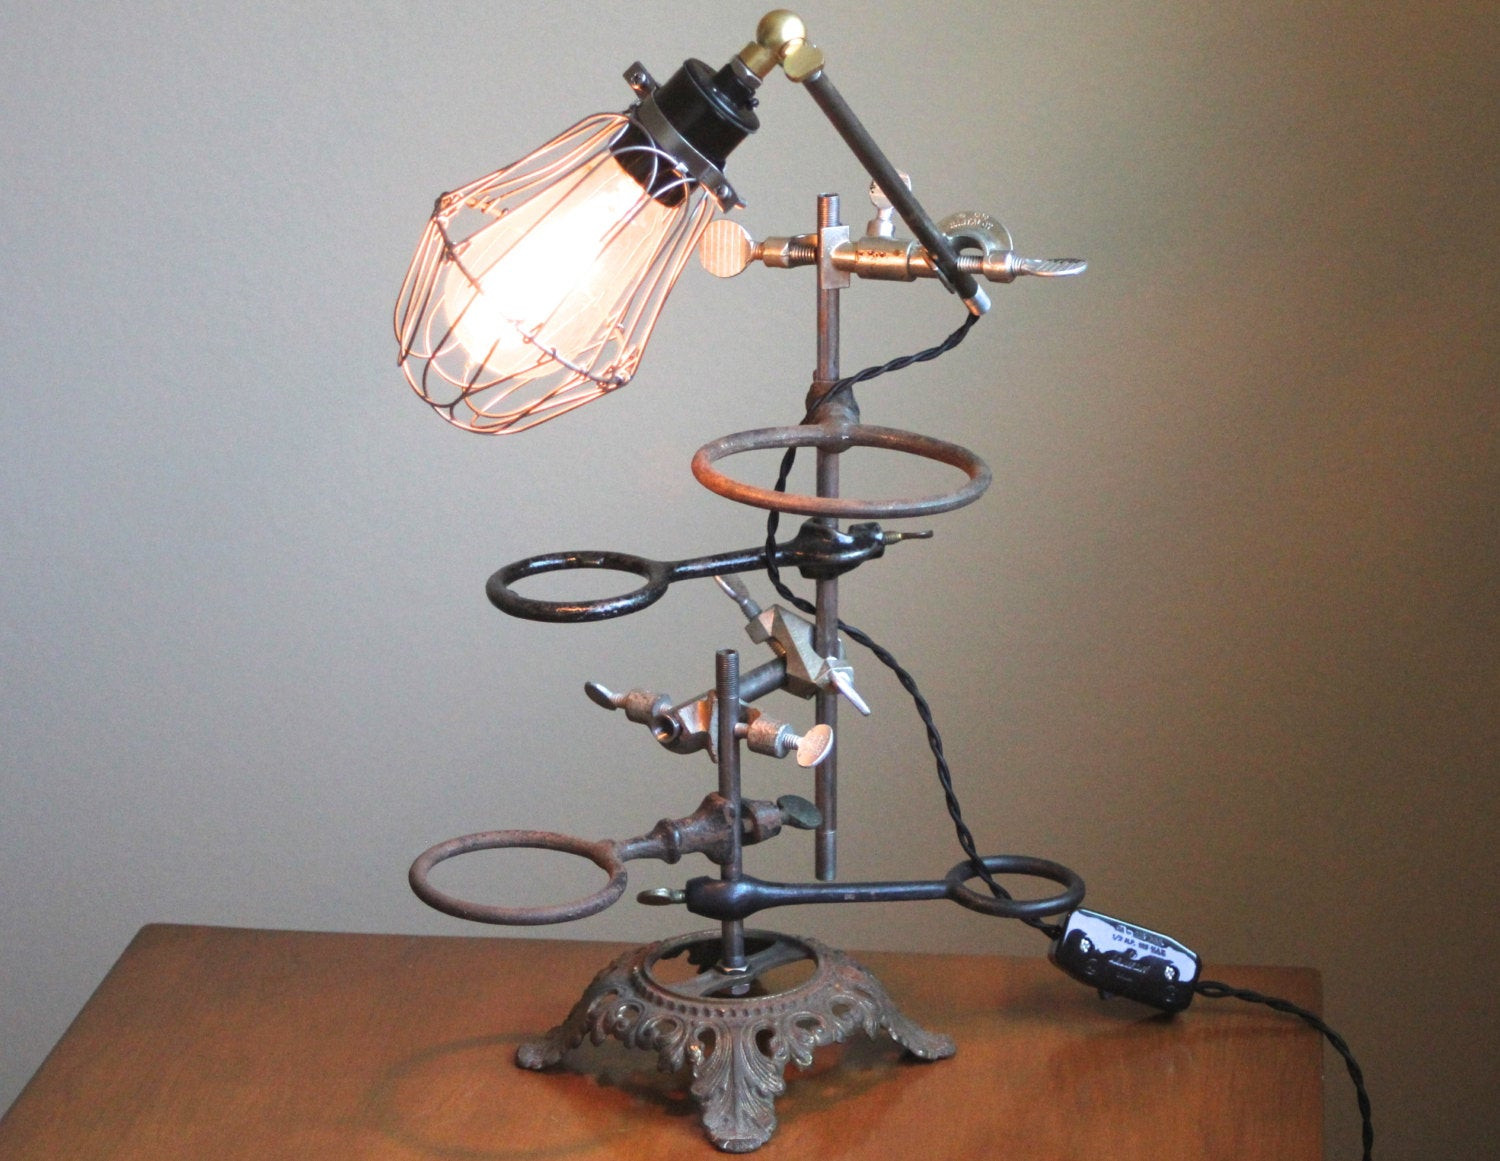 Best ideas about Steampunk Desk Lamp . Save or Pin Industrial desk lamp steampunk lamp industrial lamp Now.